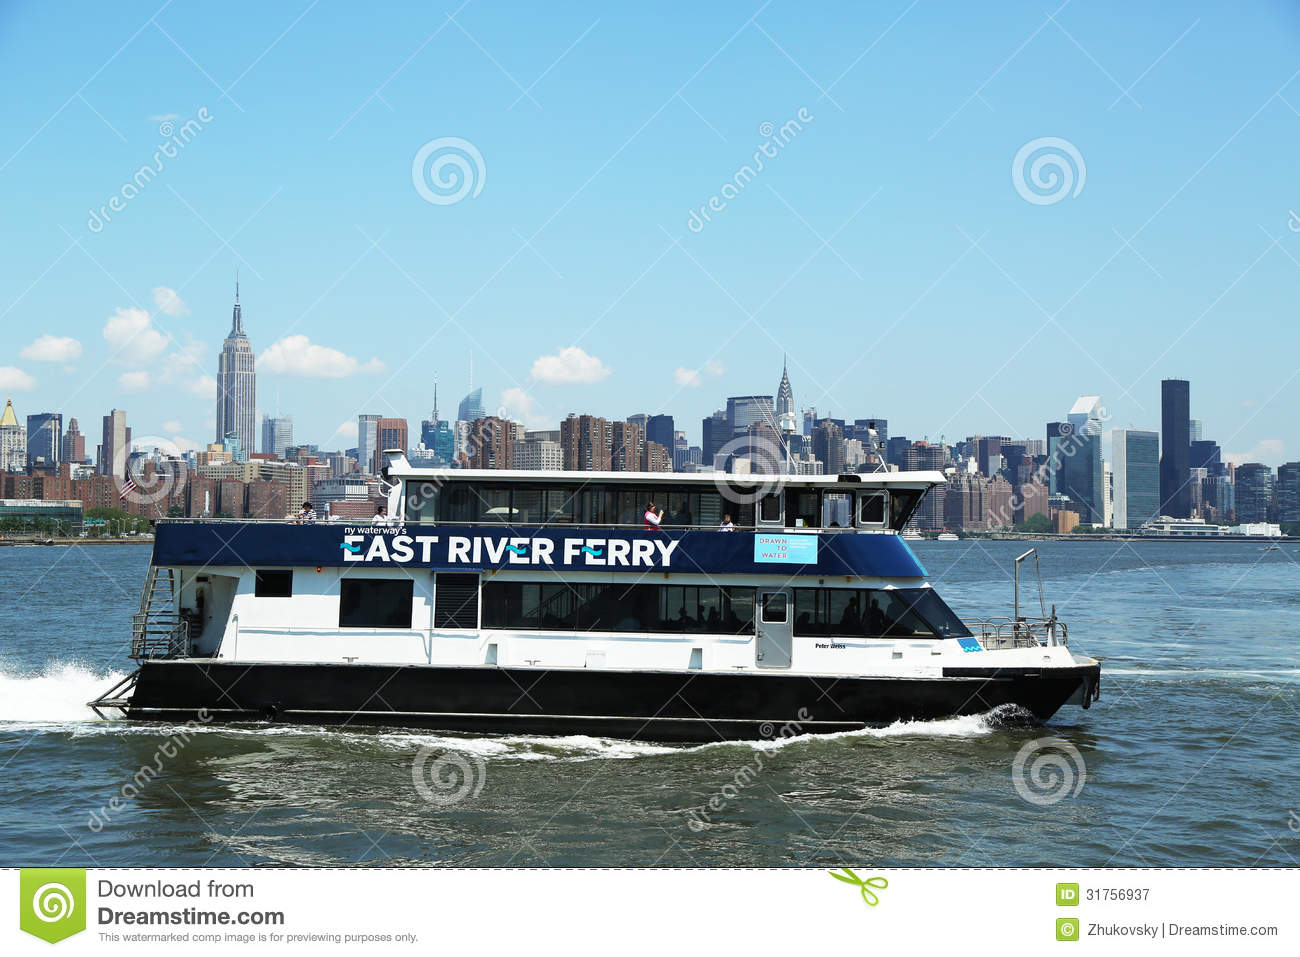 East River Ferry Boat Rides In Midtown Manhattan Editorial Photography - Image: 31756937